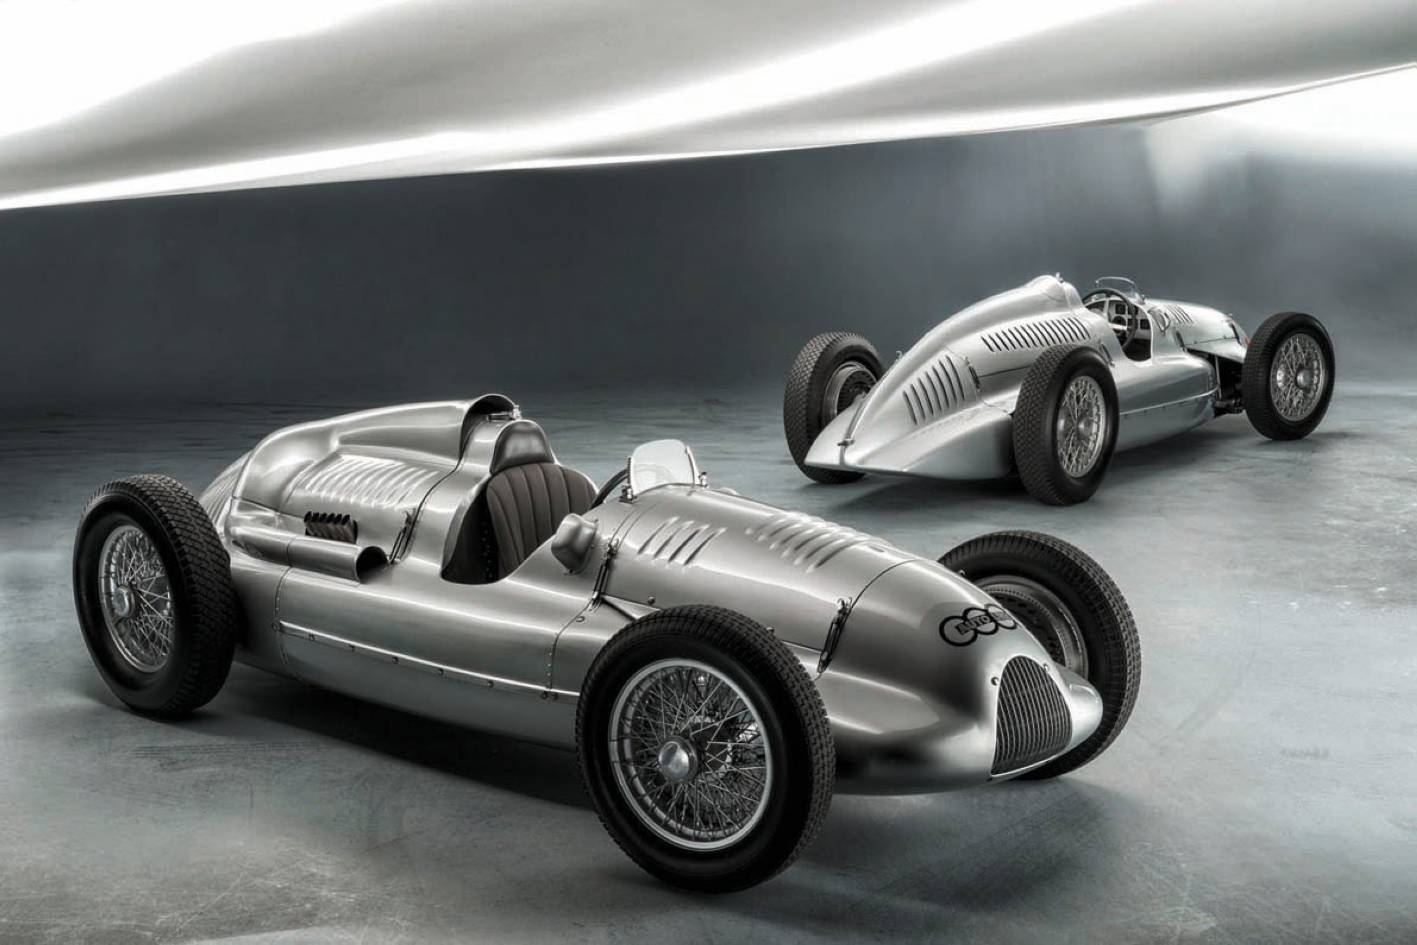 The Last Auto Union Type D Returns Home